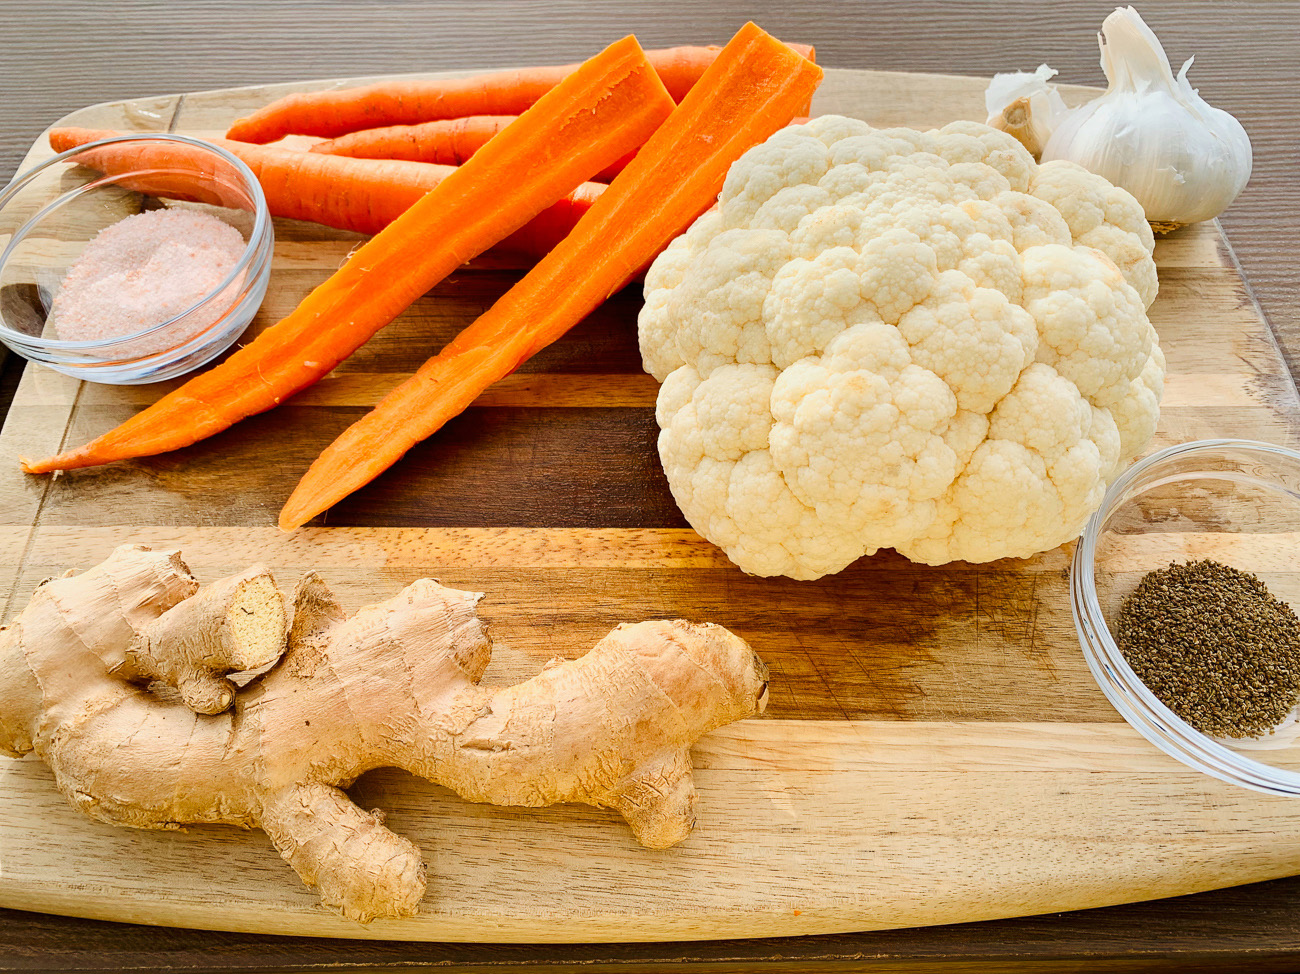 Ingredients for Fermented Cauliflower and Carrots with Ginger, Garlic and Celery Seeds